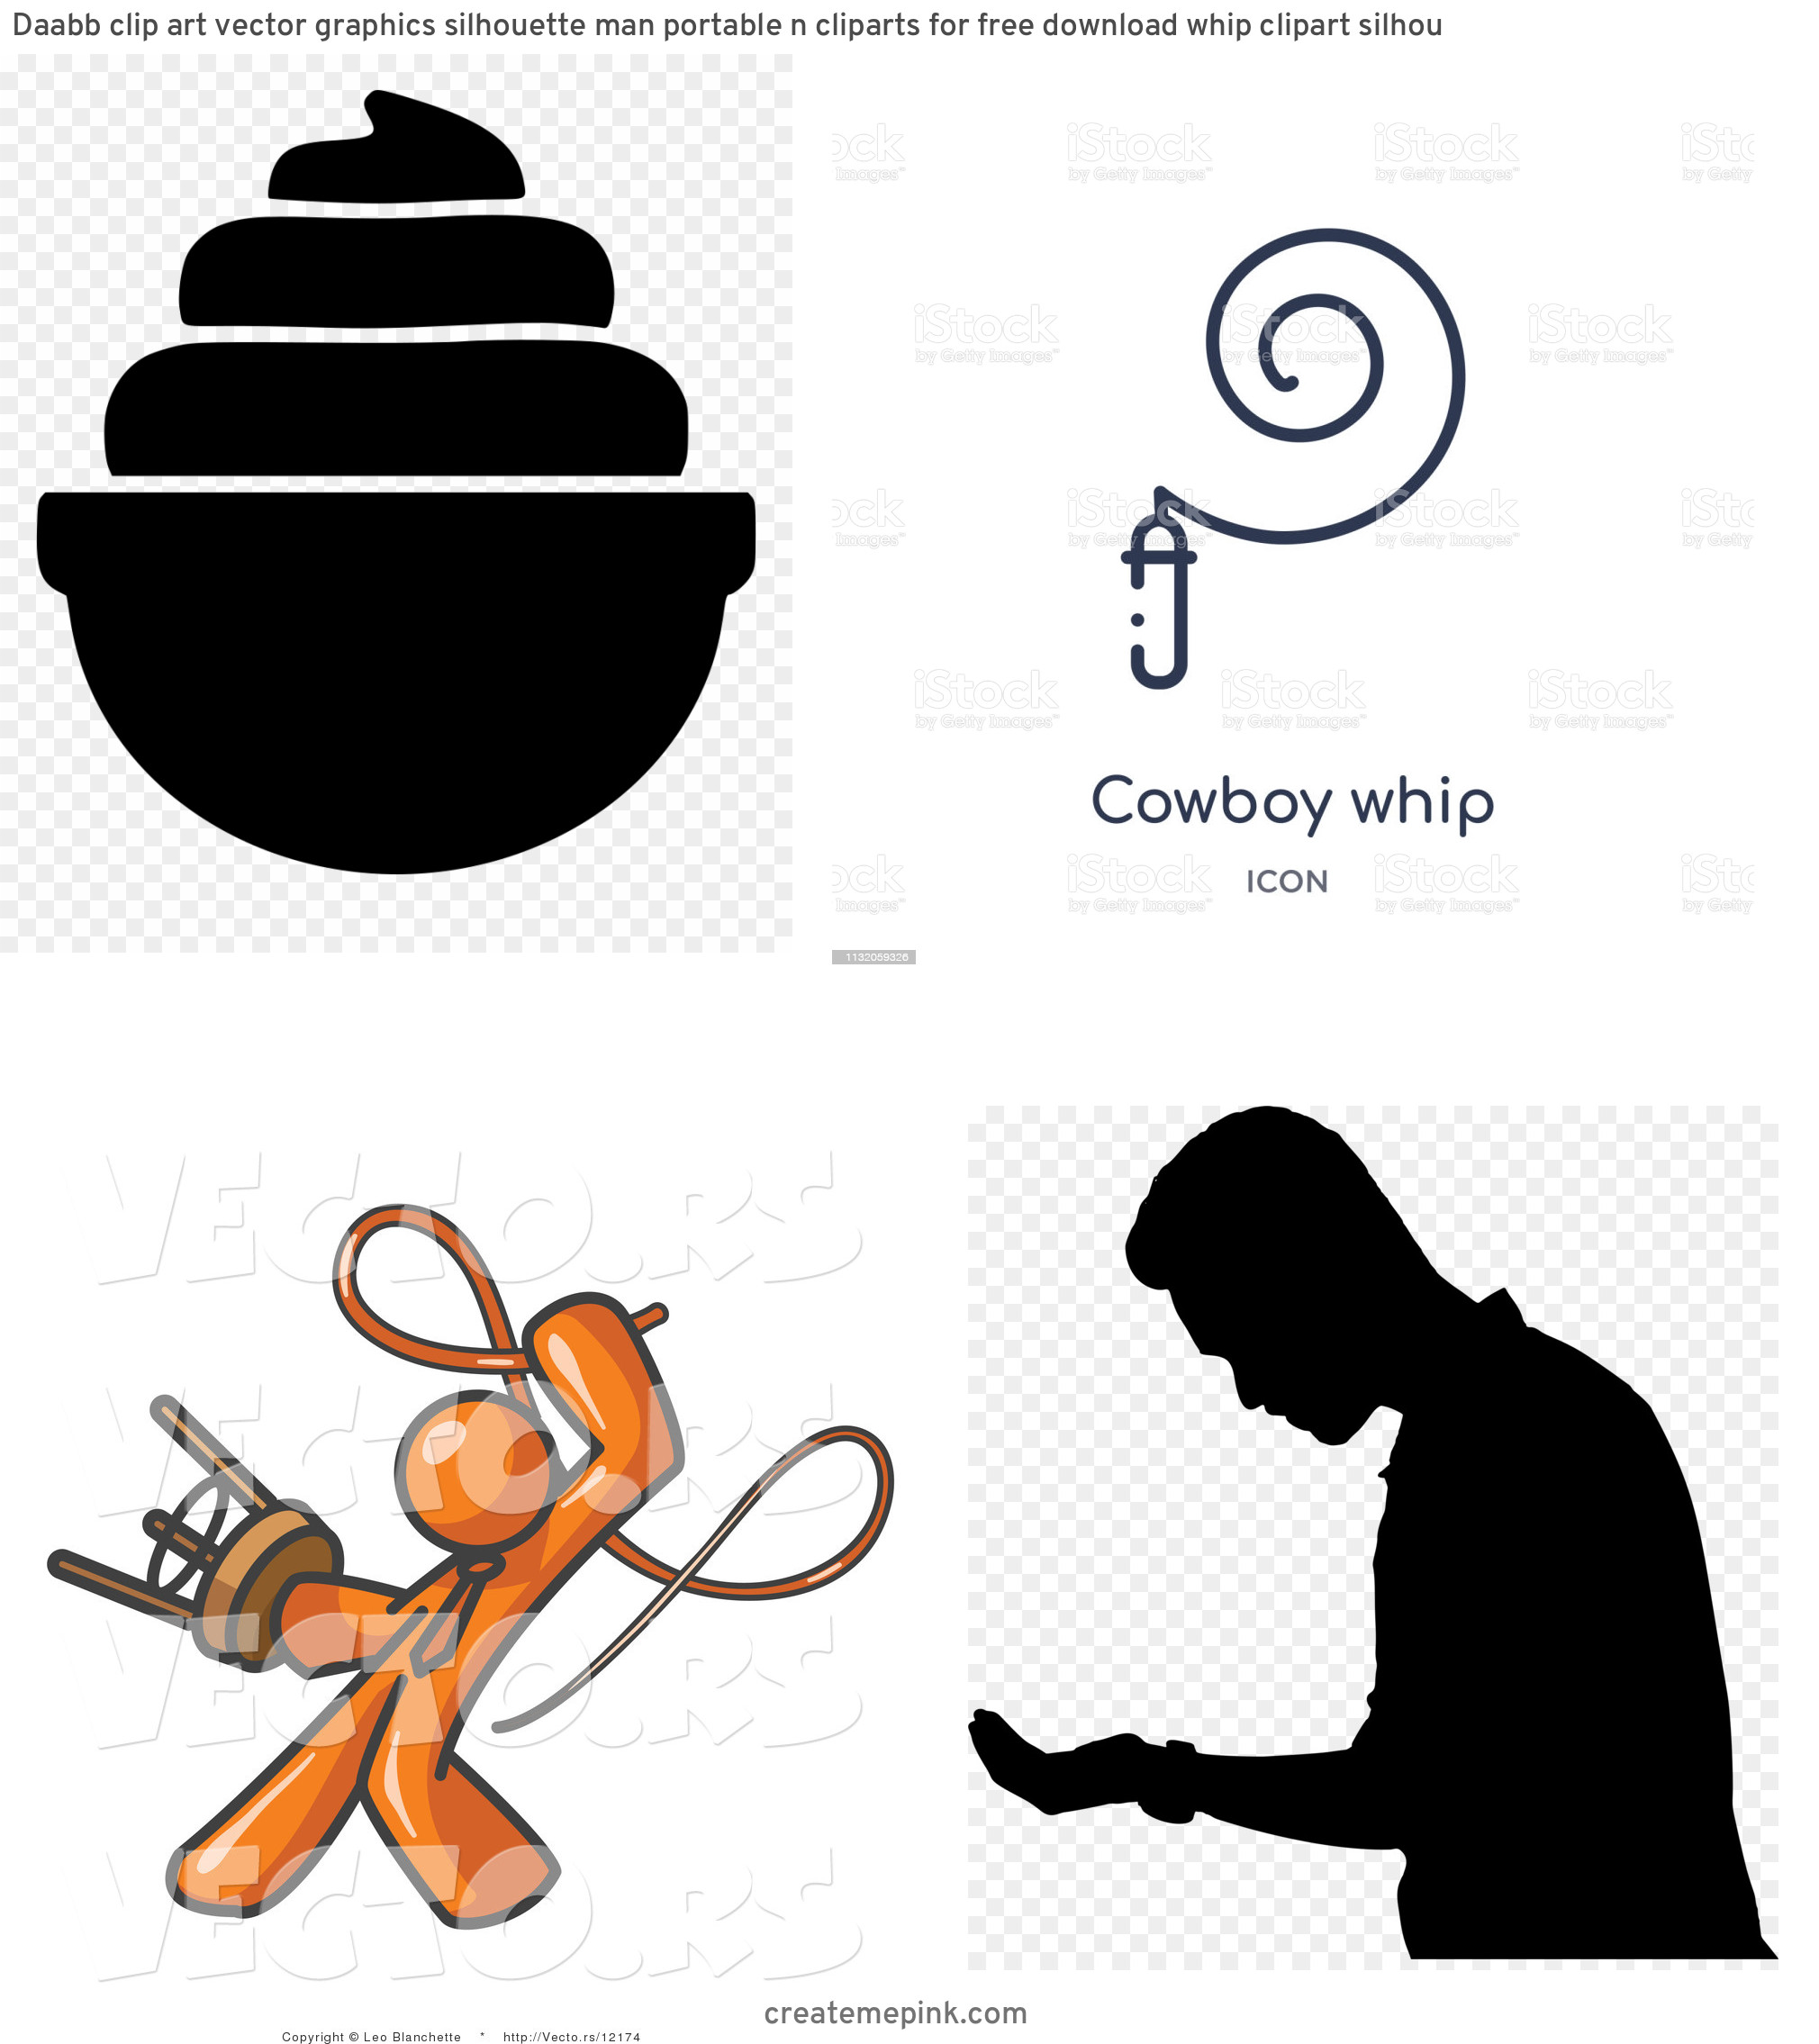 Whip Vector: Daabb Clip Art Vector Graphics Silhouette Man Portable N Cliparts For Free Download Whip Clipart Silhou